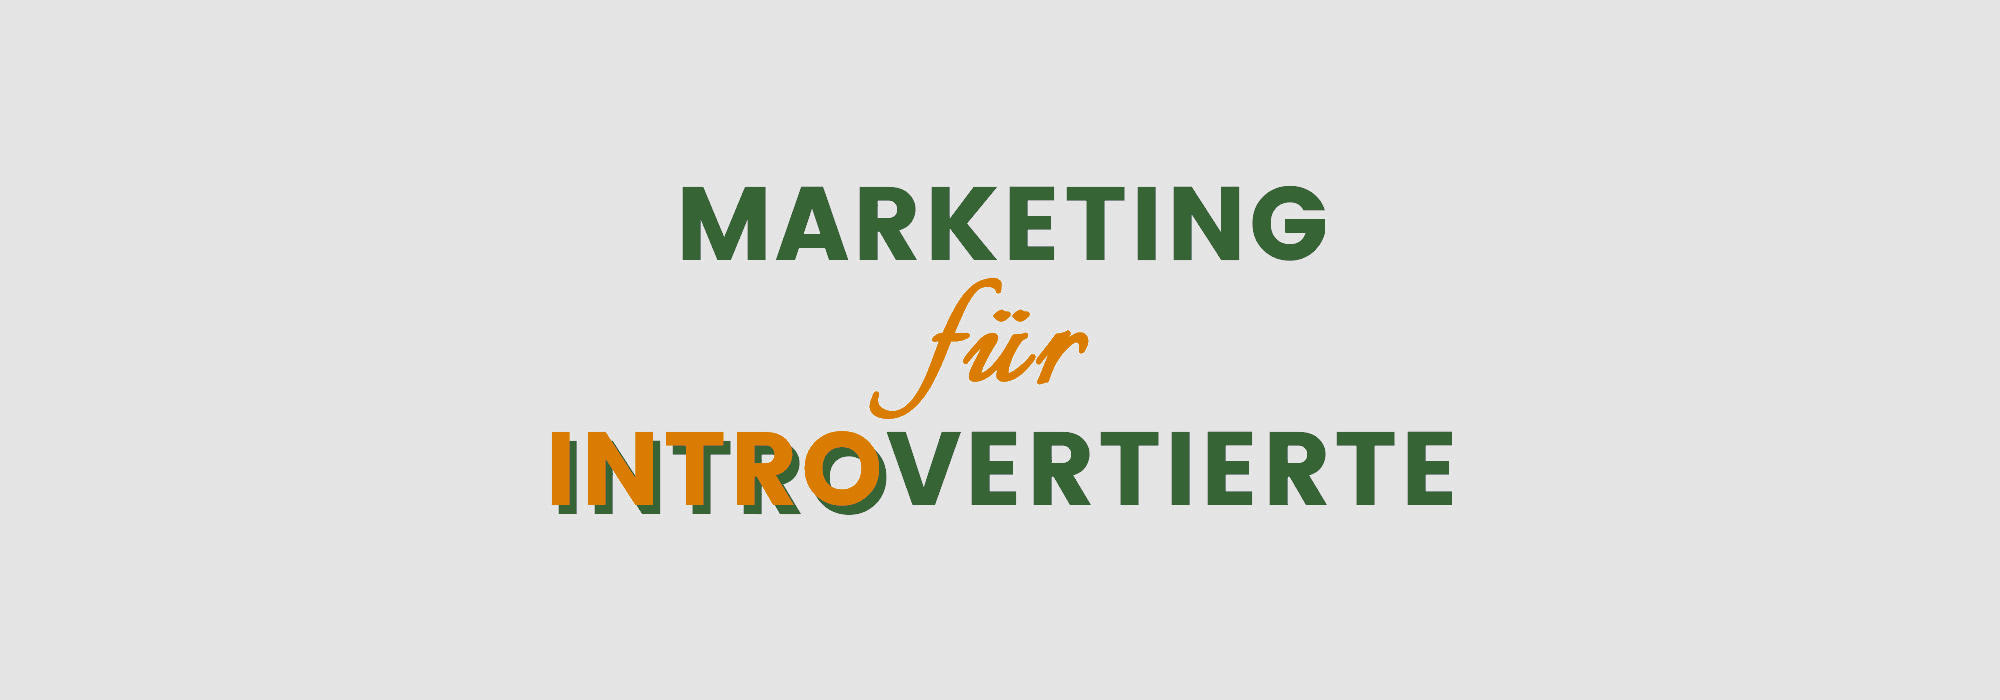 Marketing für Introvertierte und Hochsensible?